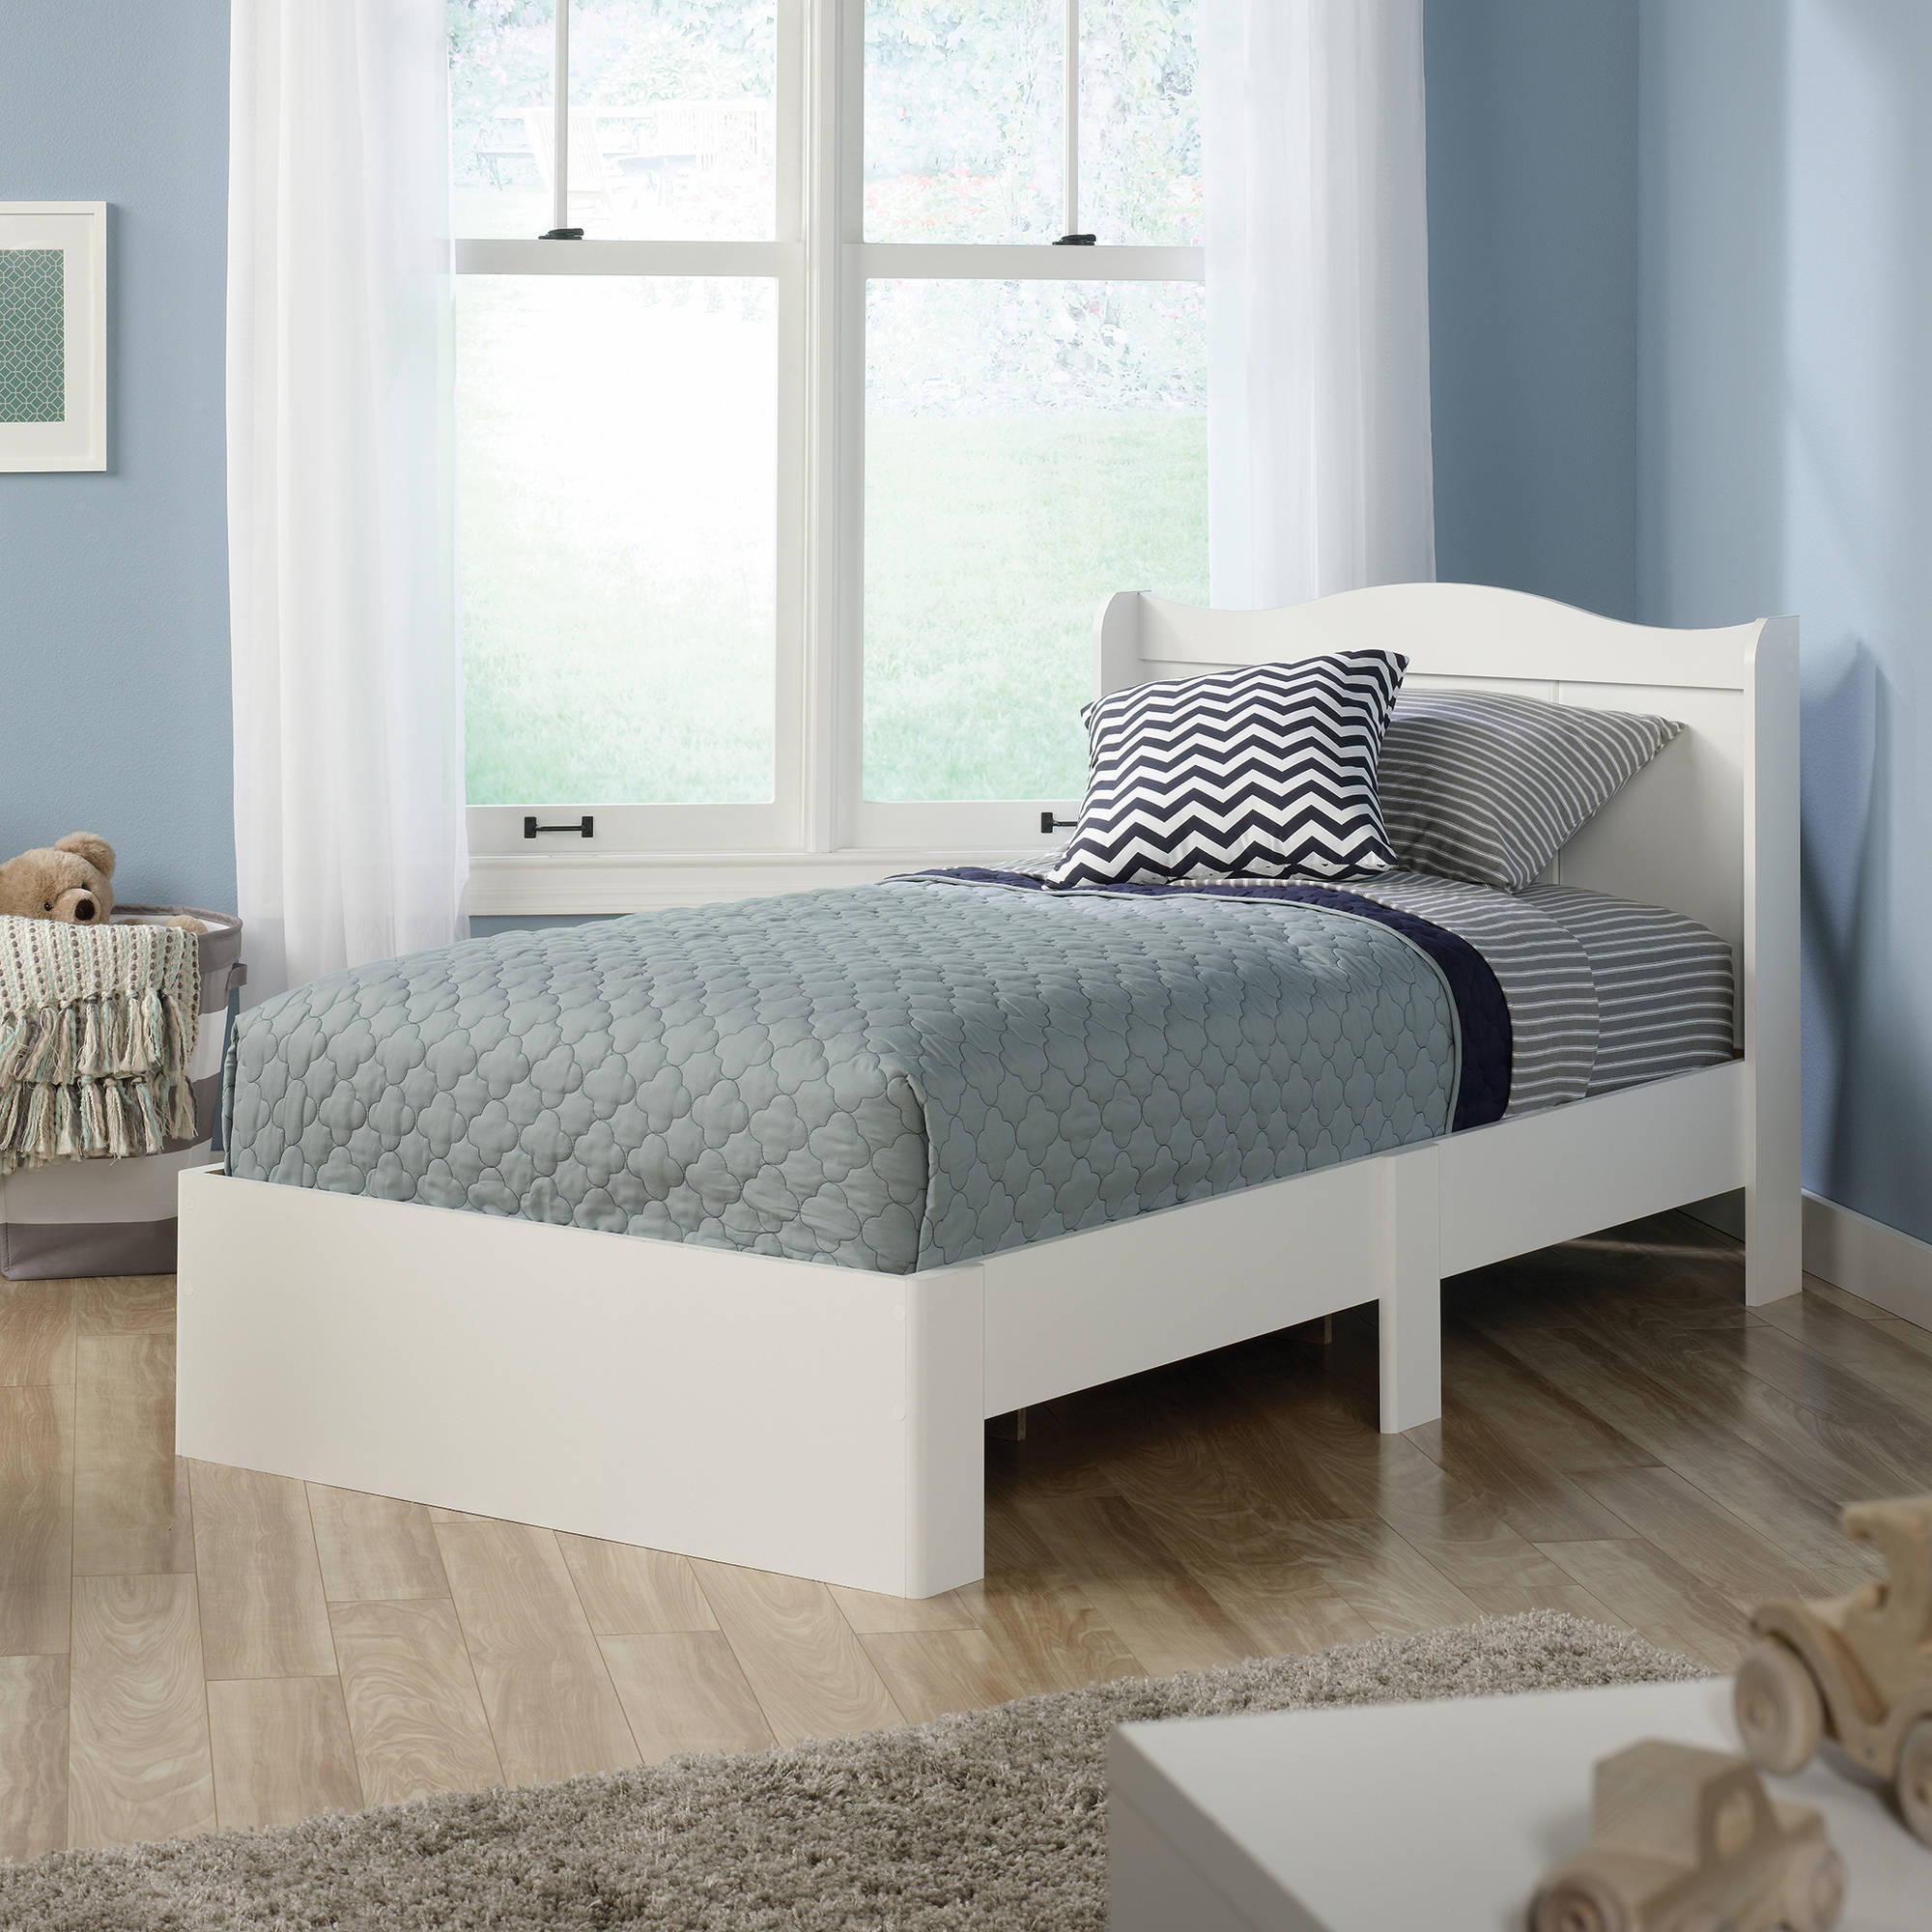 Plain Twin Bed Frames Mates Soft White With Design